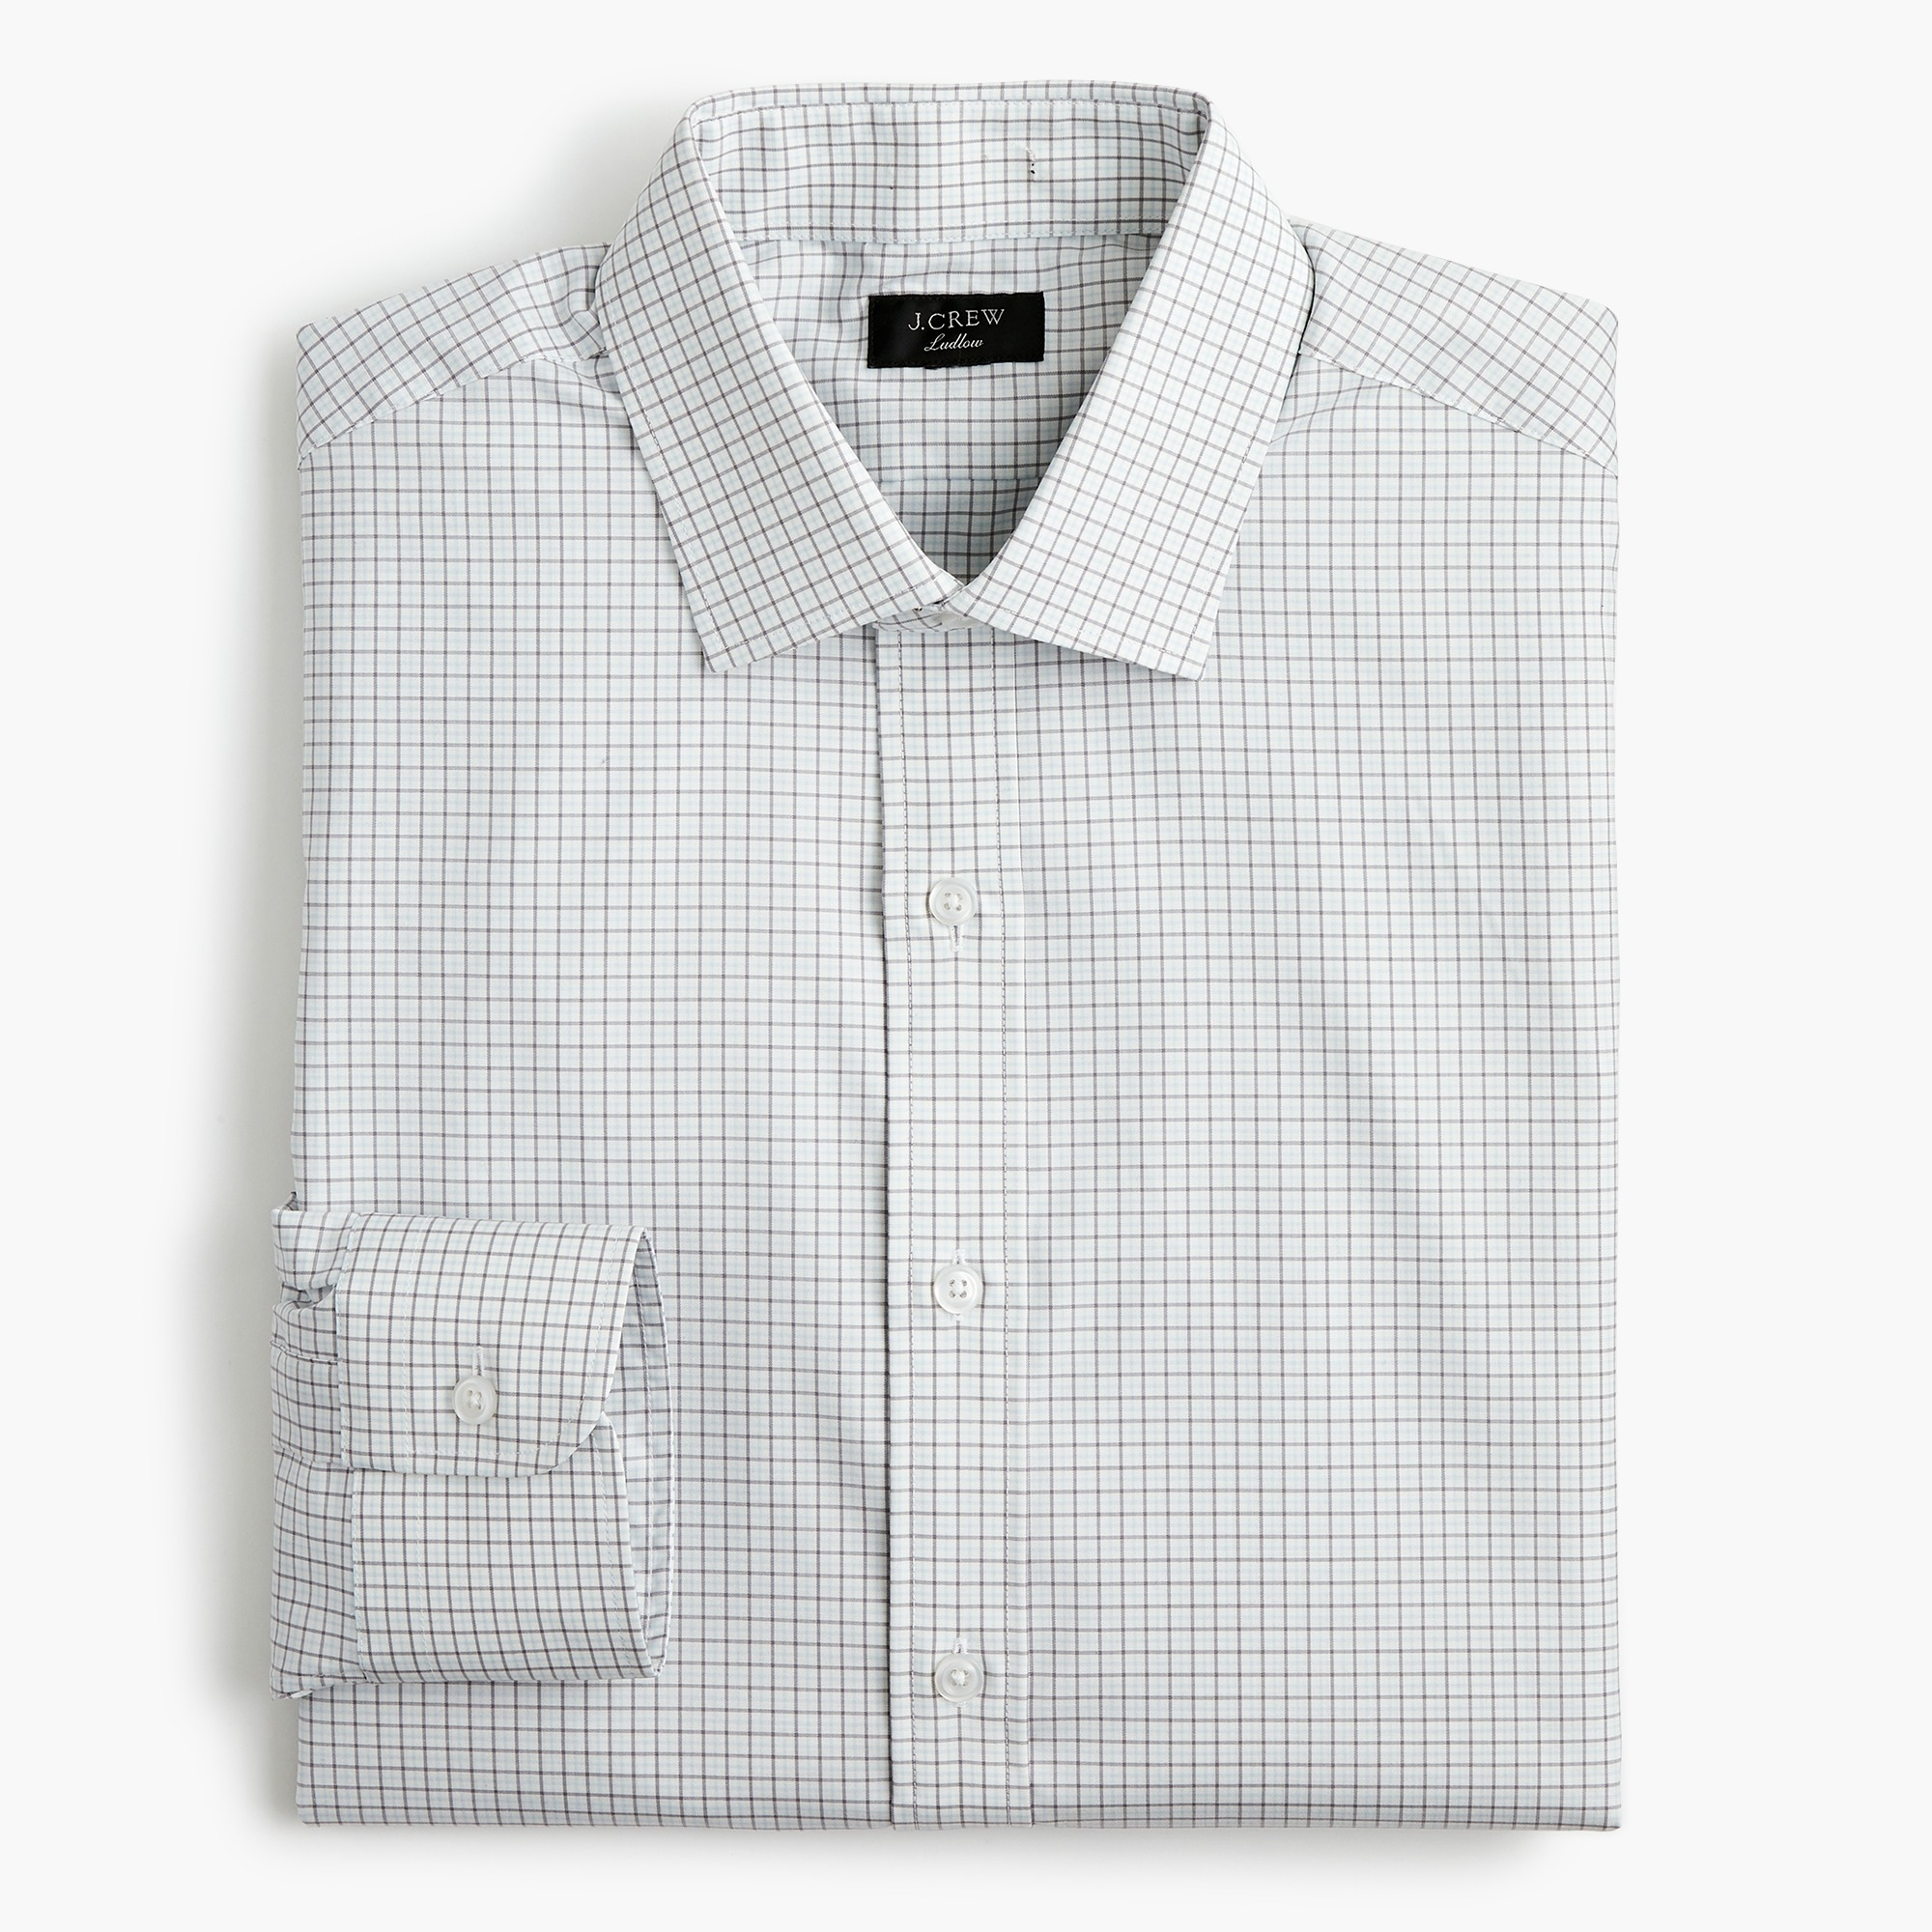 mens Ludlow Slim-fit stretch two-ply easy-care cotton dress shirt in micro-tattersall